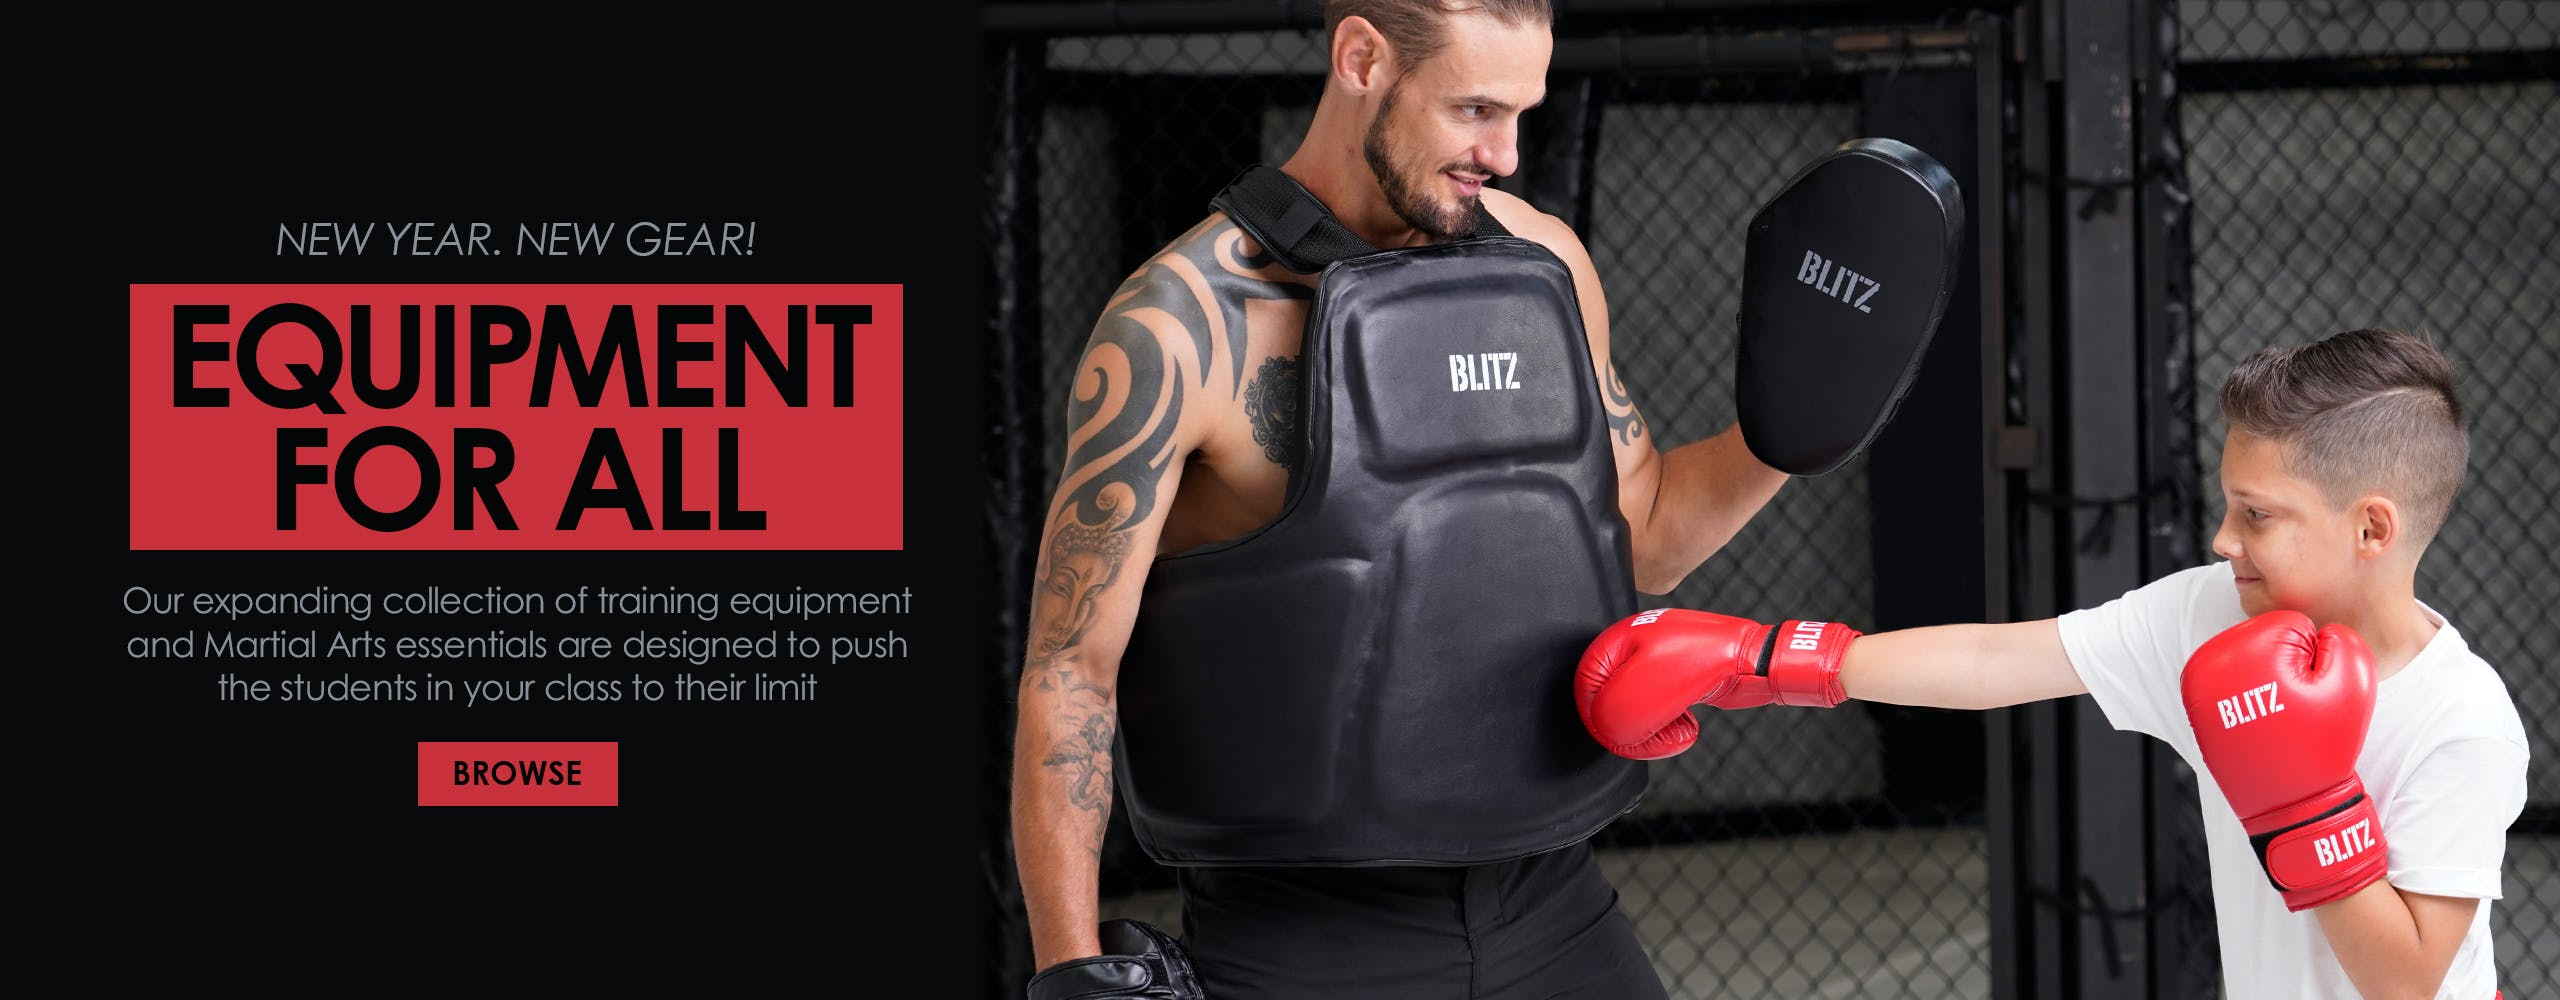 New year, new gear! Our expanding collection of training equipment and Martial Arts essentials are designed to push the students in your class to their limit.